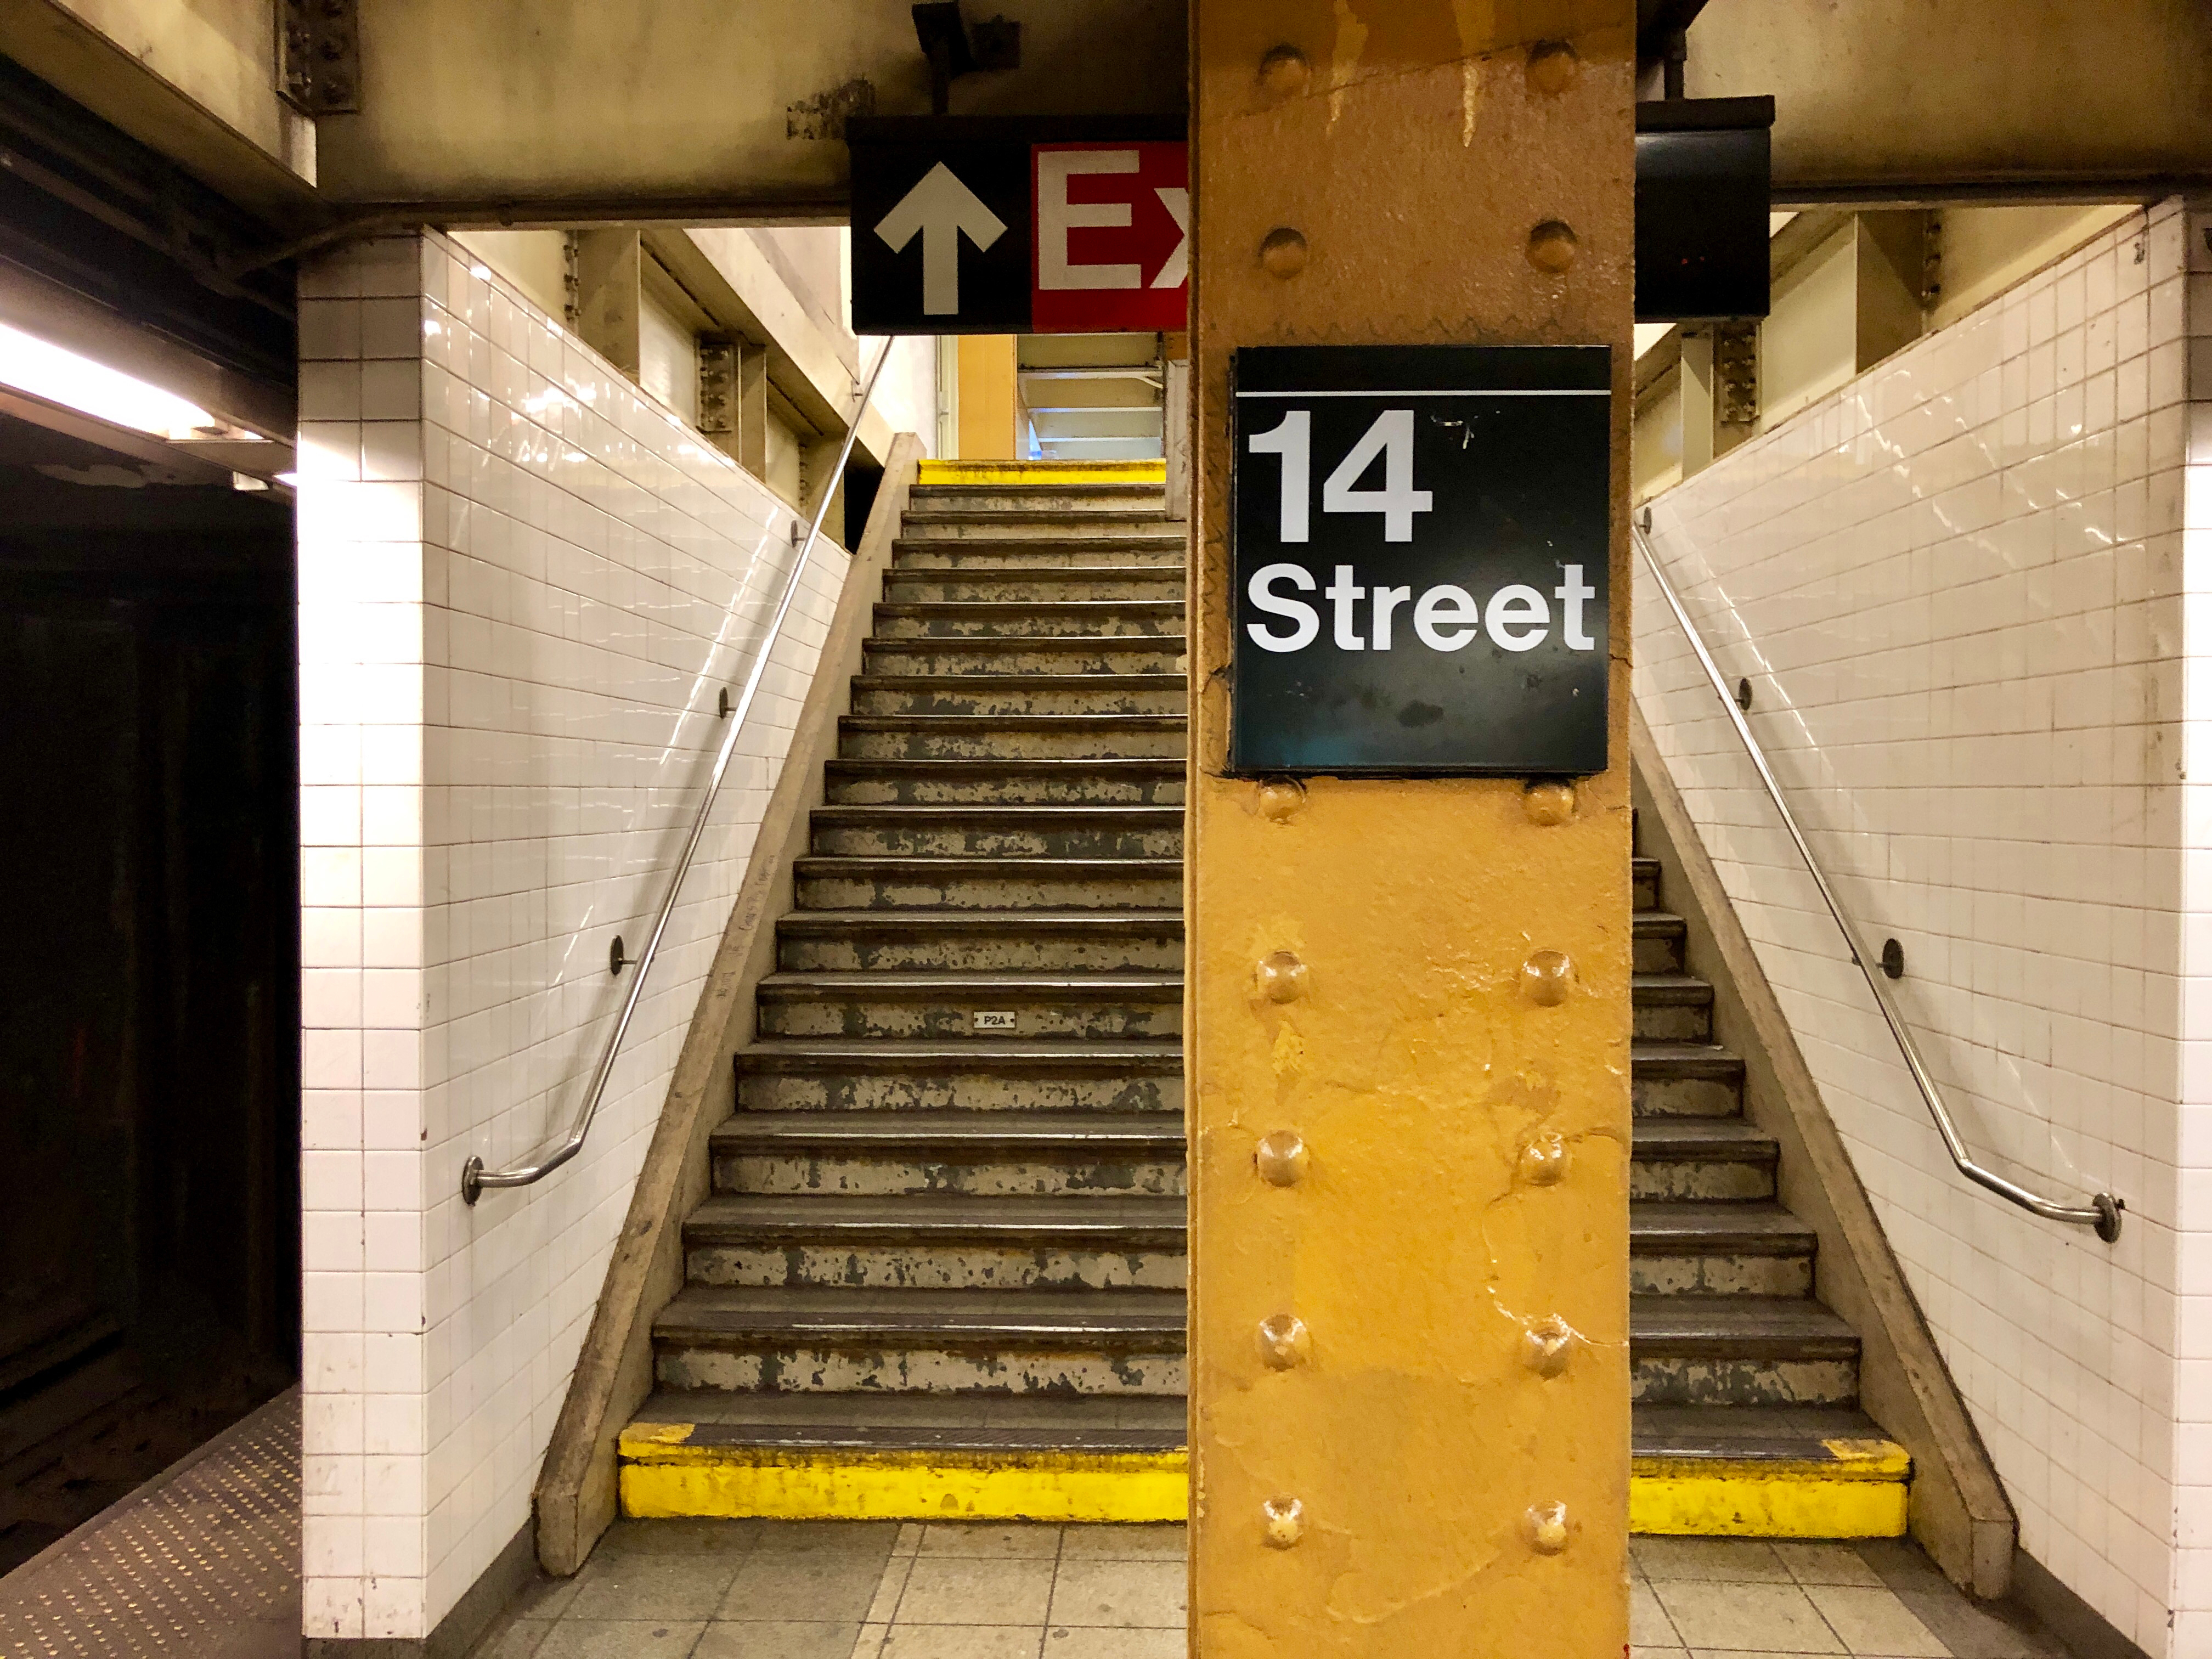 MTA plans accessibility upgrades at dozens of subway stops, but has yet to reveal which ones